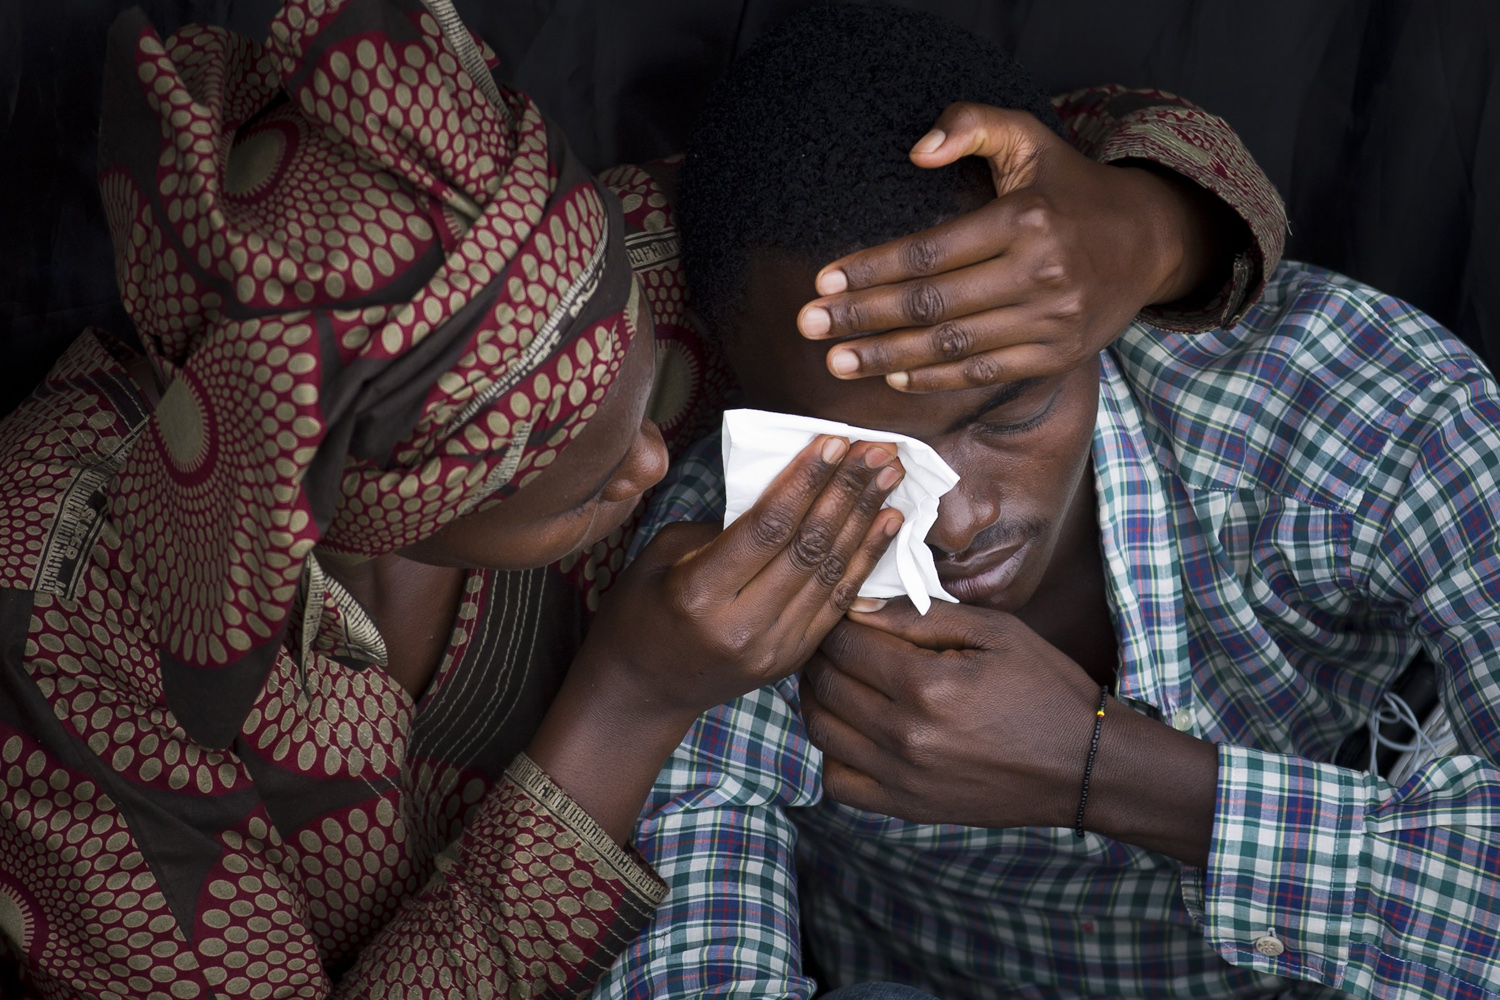 Apr. 7, 2014. Bizimana Emmanuel, who was born two years before the genocide, is consoled by an unidentified woman while attending a public ceremony to mark the 20th anniversary of the Rwandan genocide, at Amahoro stadium in Kigali, Rwanda.